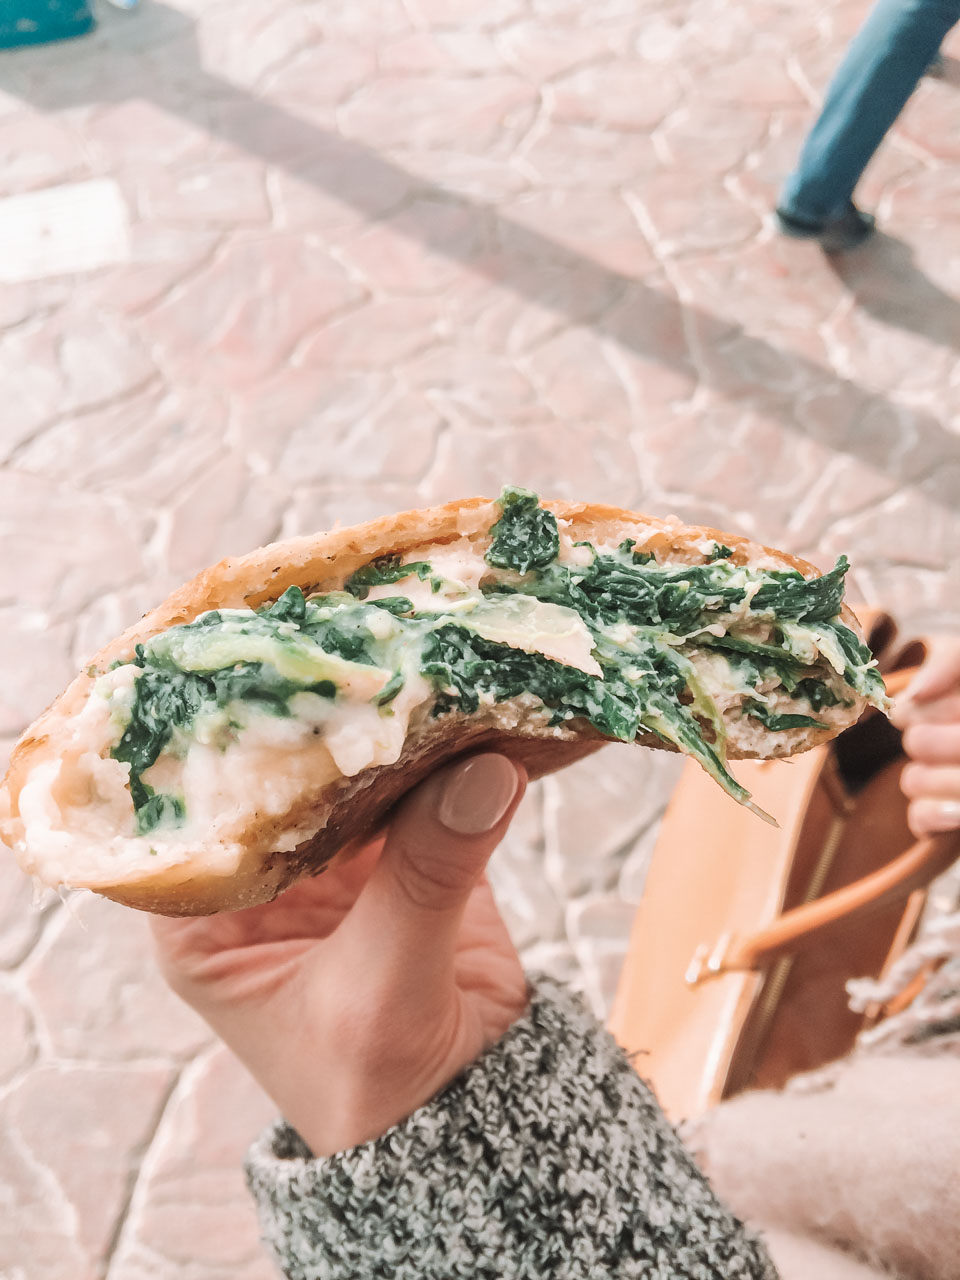 A girl holding a traditional Maltese pastry with spinach